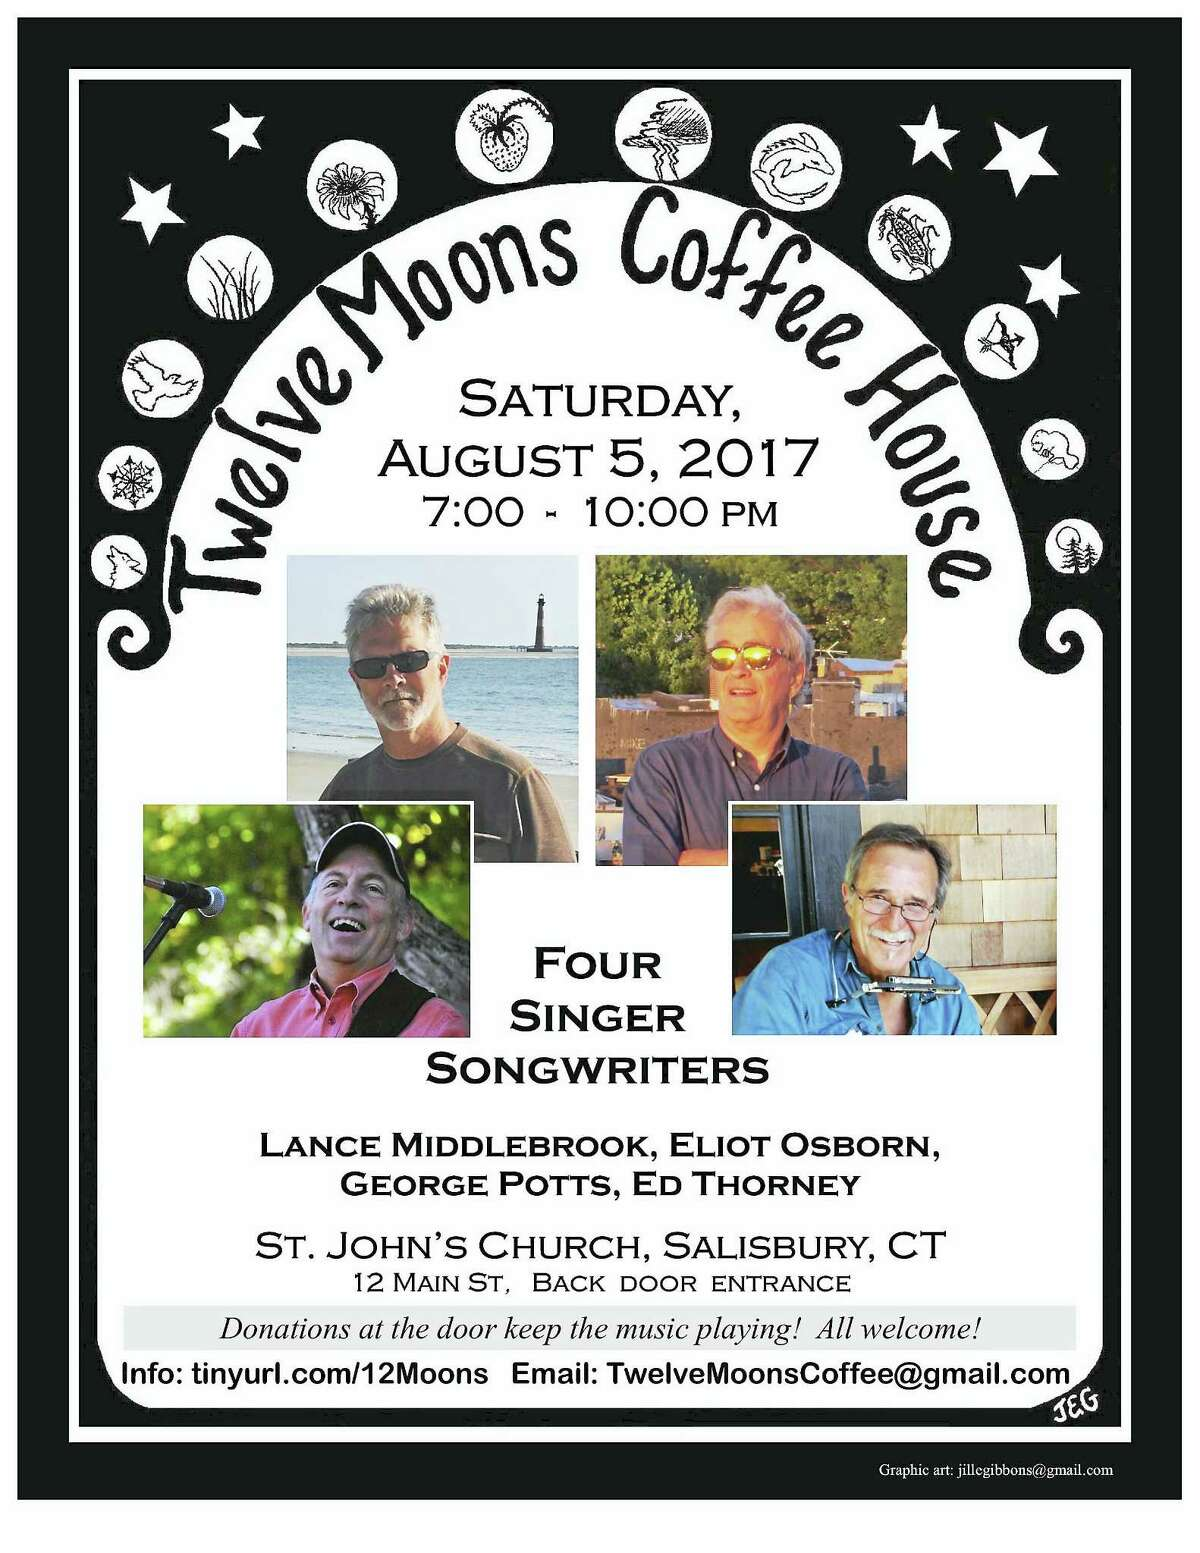 12 Moons Coffee House features four singer-songwriters on Aug. 6.